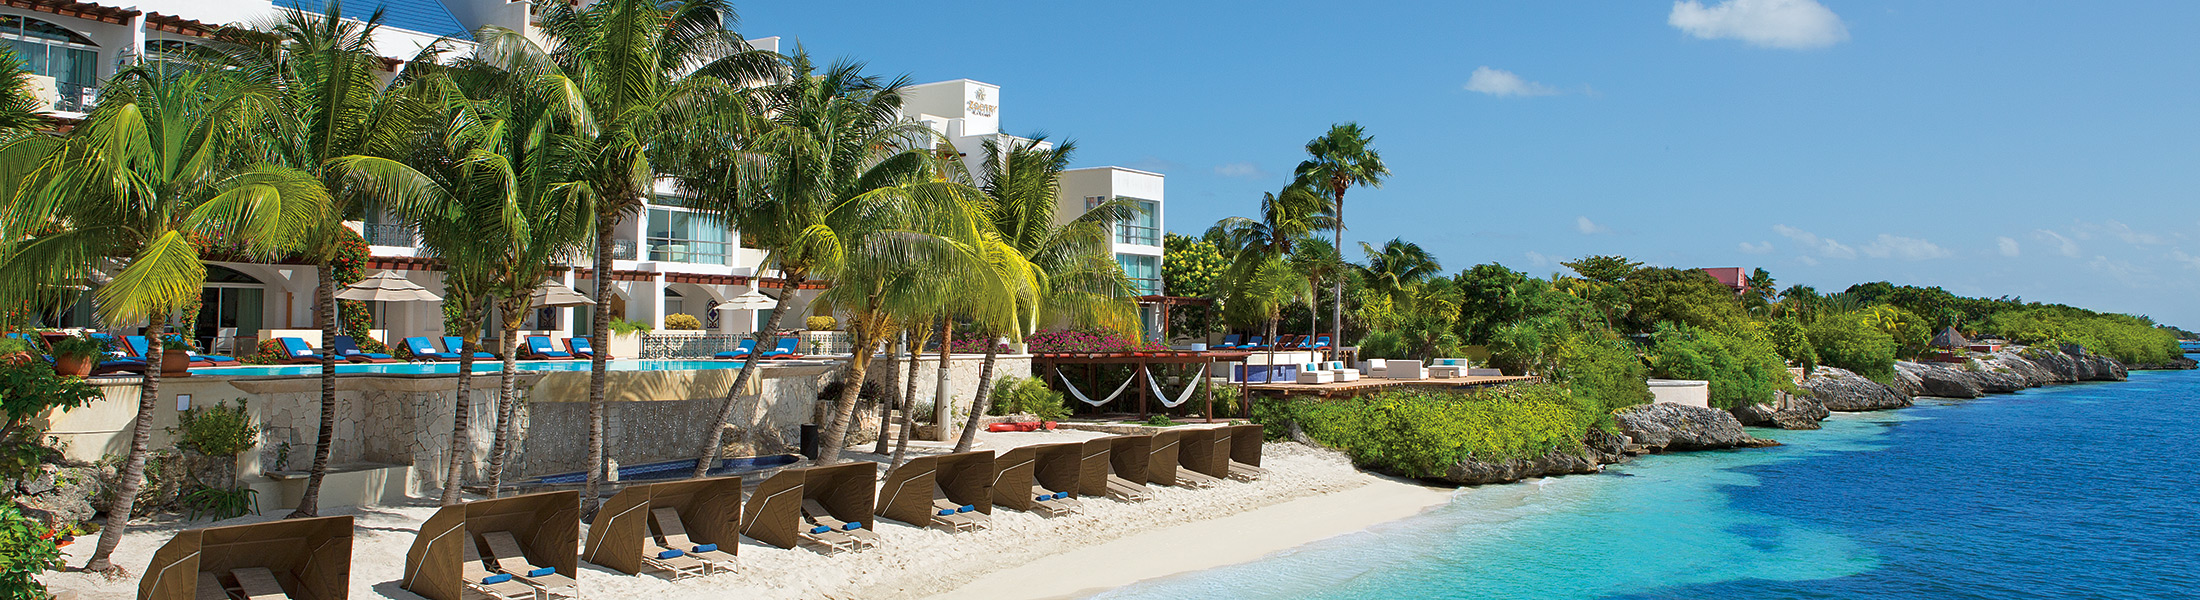 Beach with sun loungers at Zoetry Villa Rolandi Isla Mujeres